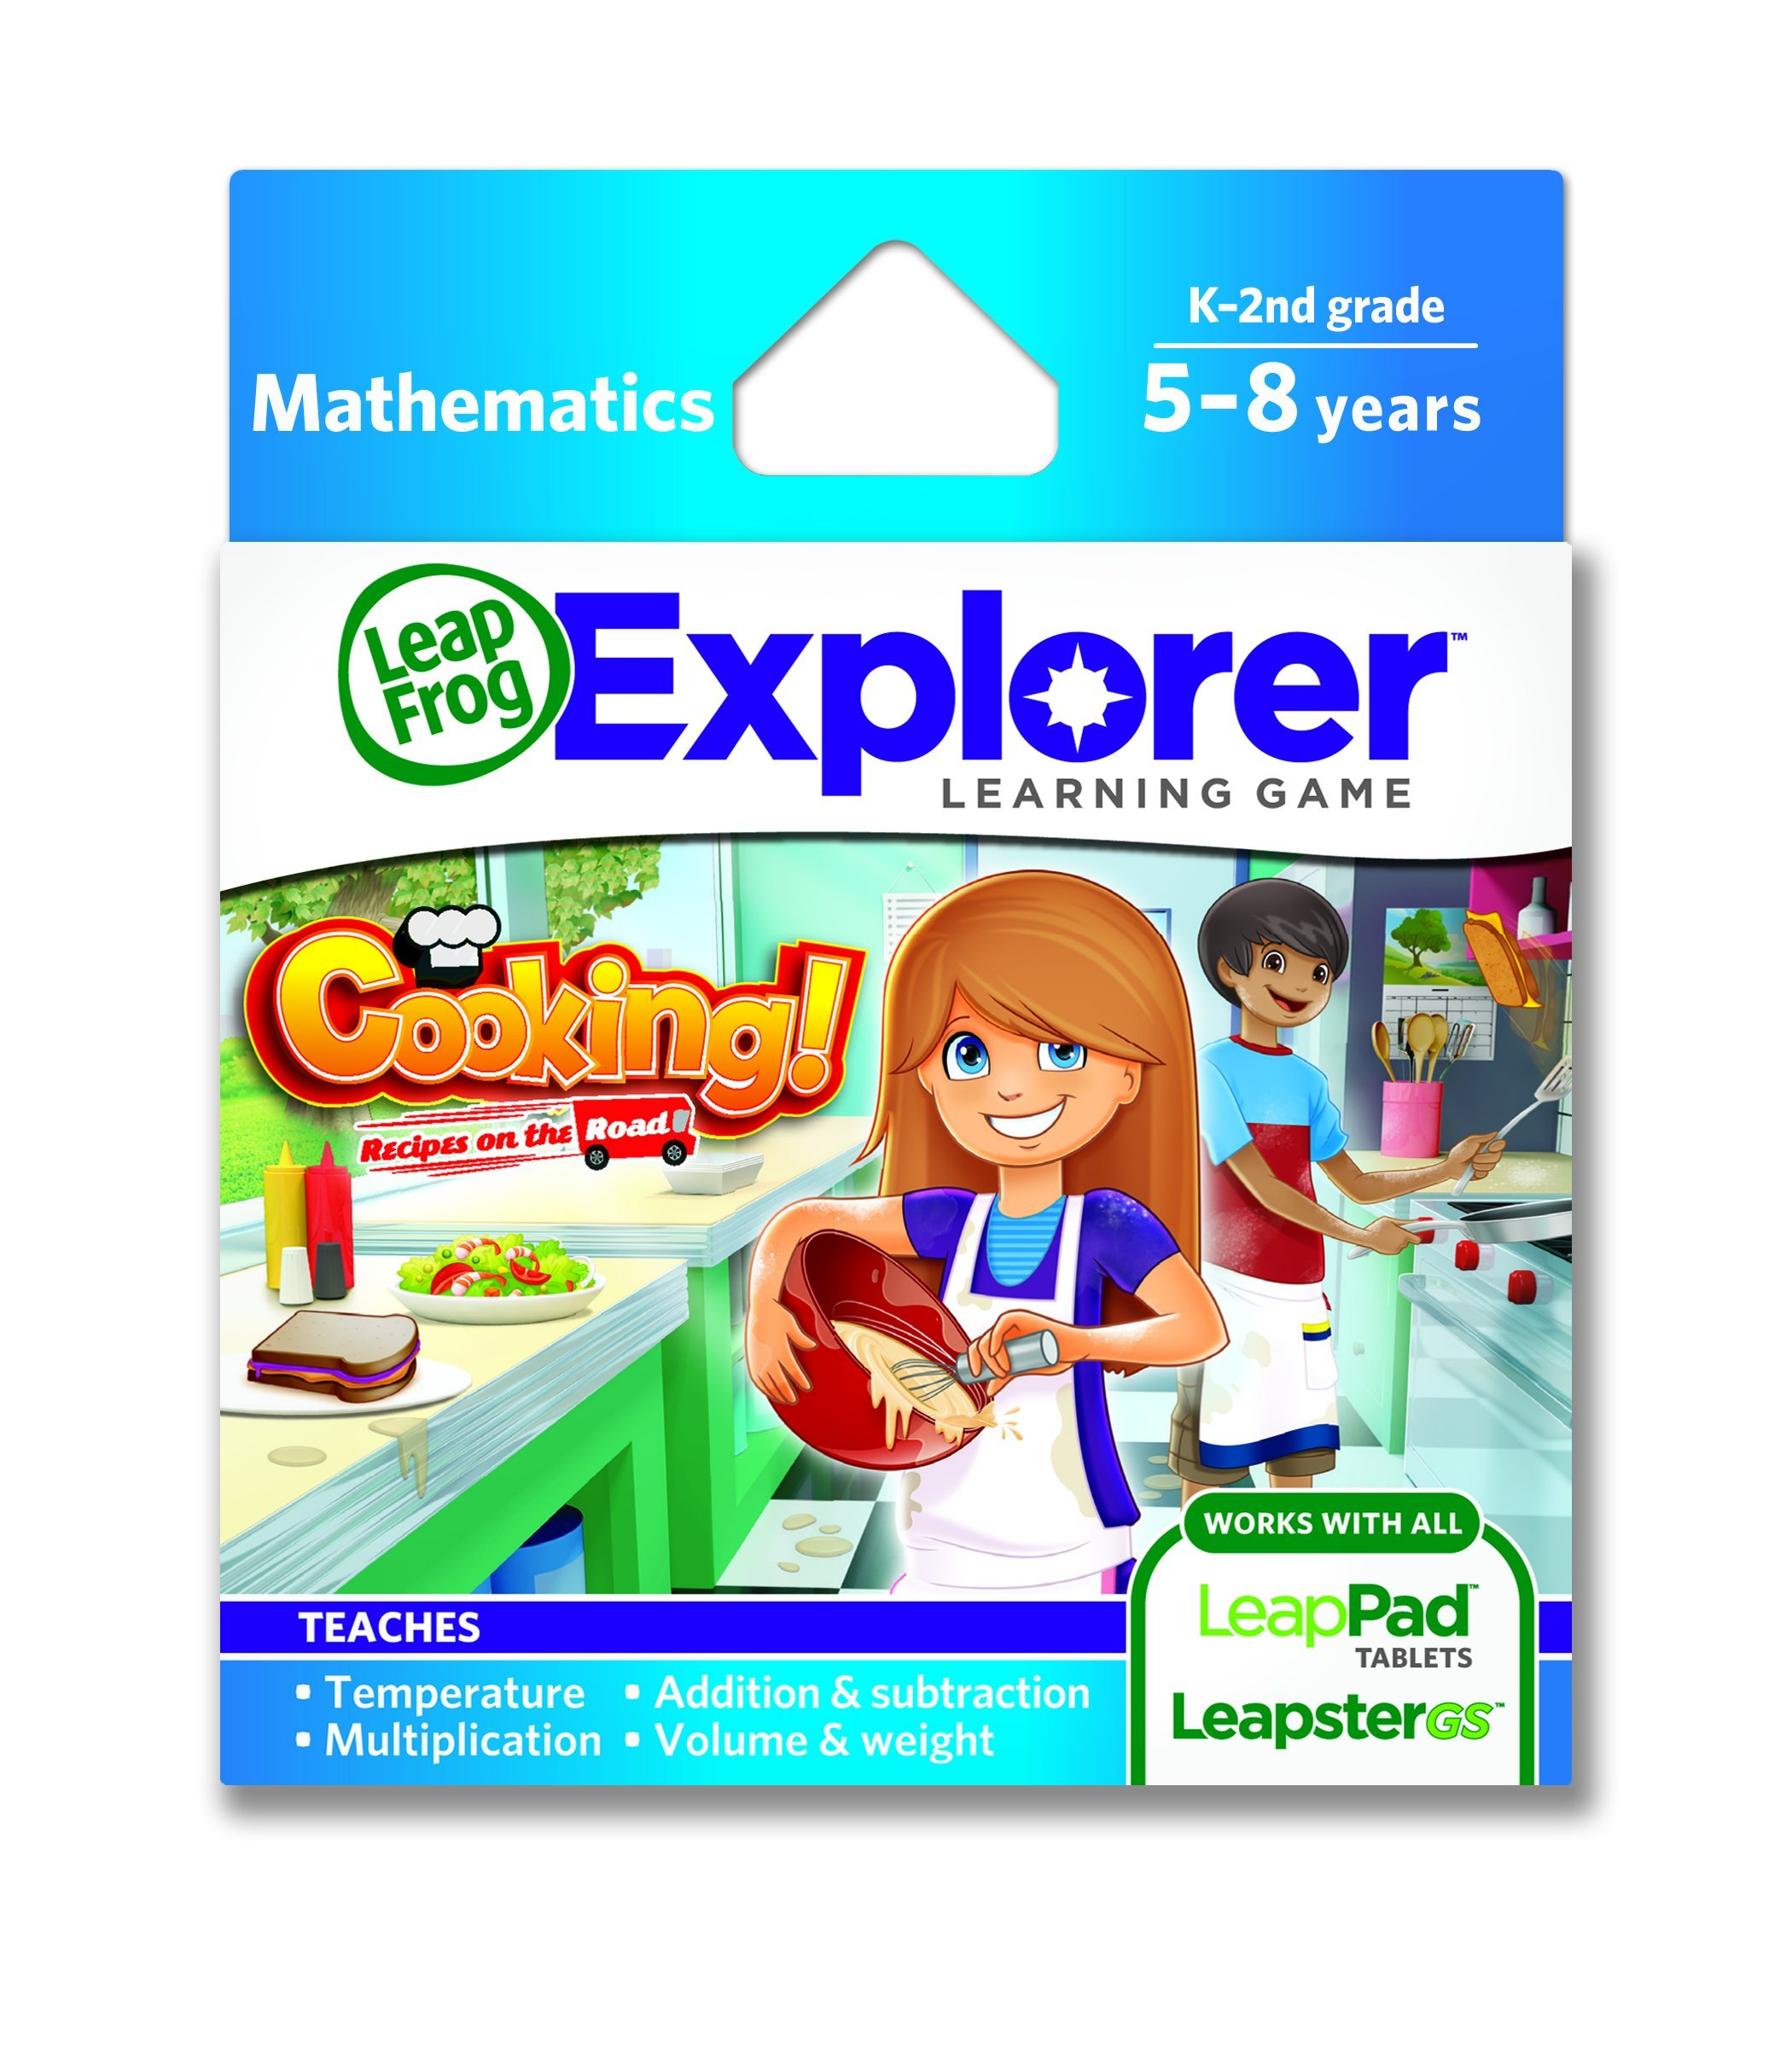 LeapFrog Cooking Recipes On The Road Learning Game (works with LeapPad Tablets and Leapster GS) by LeapFrog